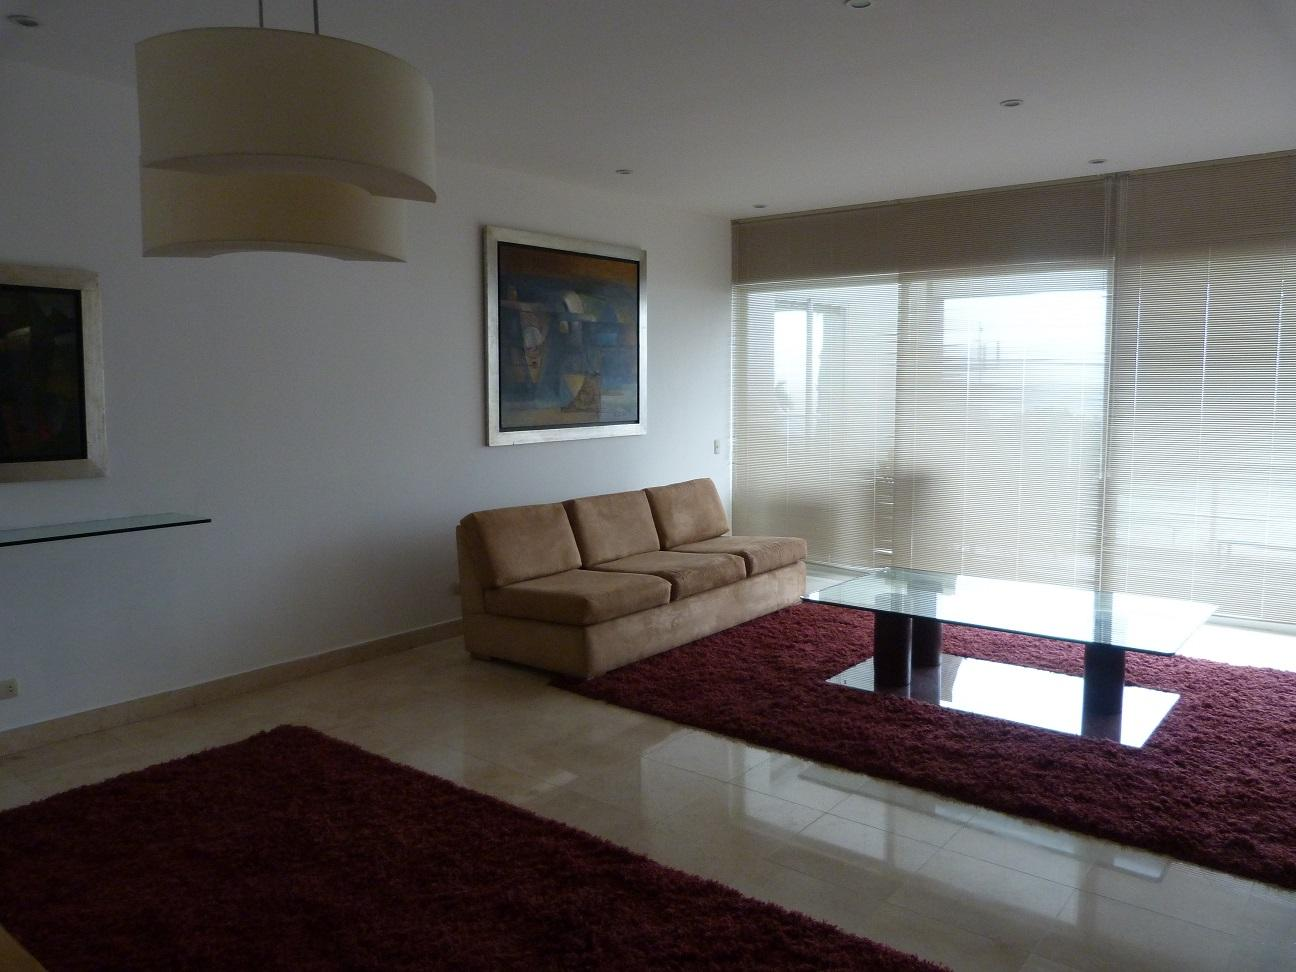 Departamento en Venta Malecon Paul Harris, Barranco, Lima